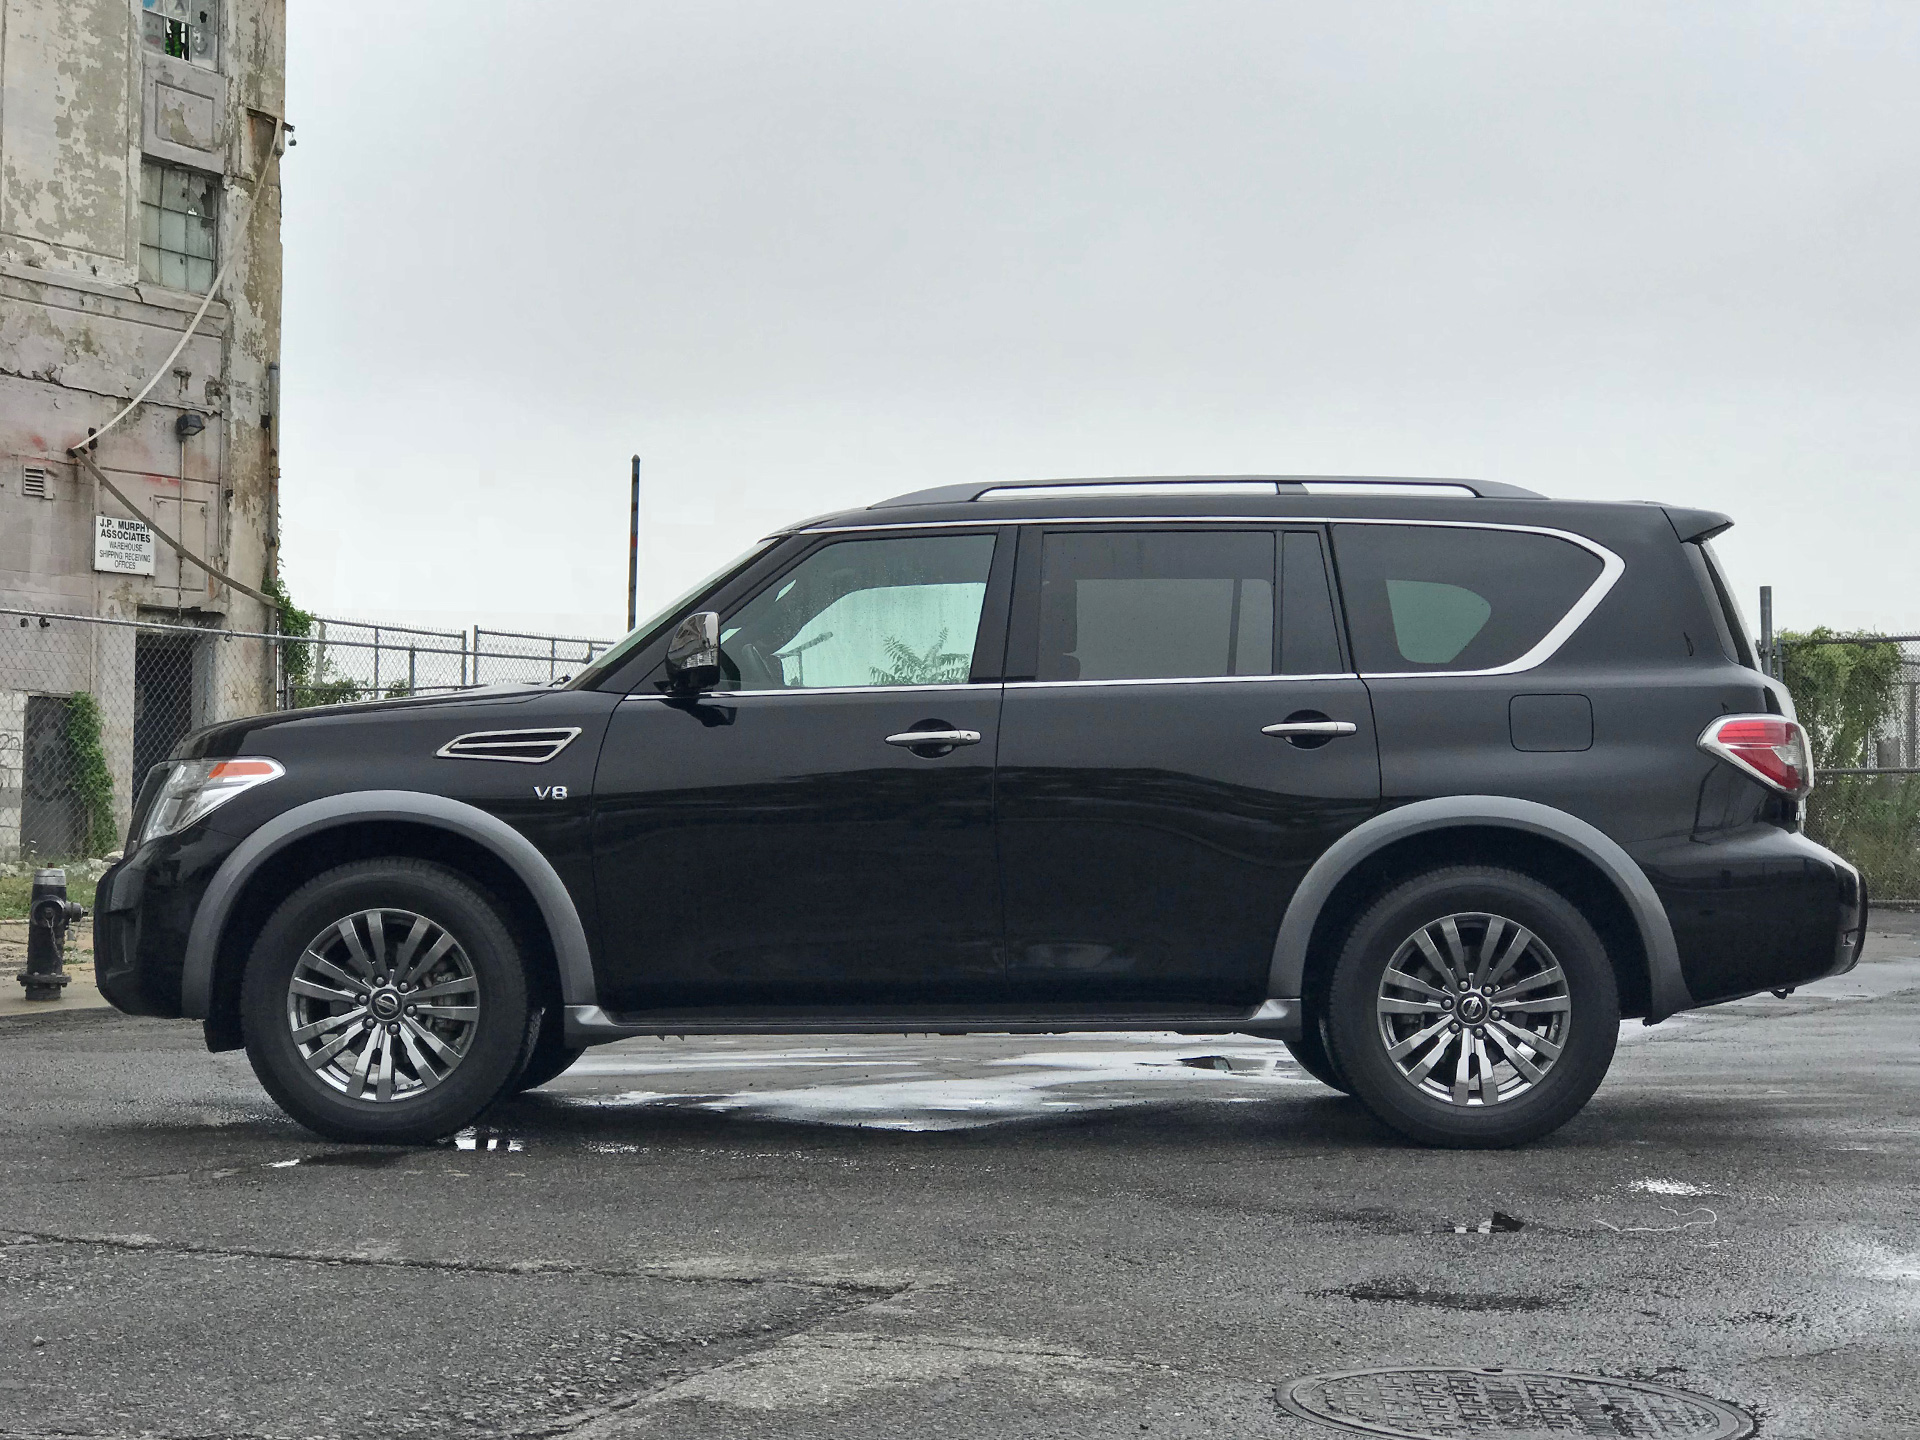 2018 Nissan Armada Platinum Reserve Test Drive Review An Suv As Big And Old As A Battleship